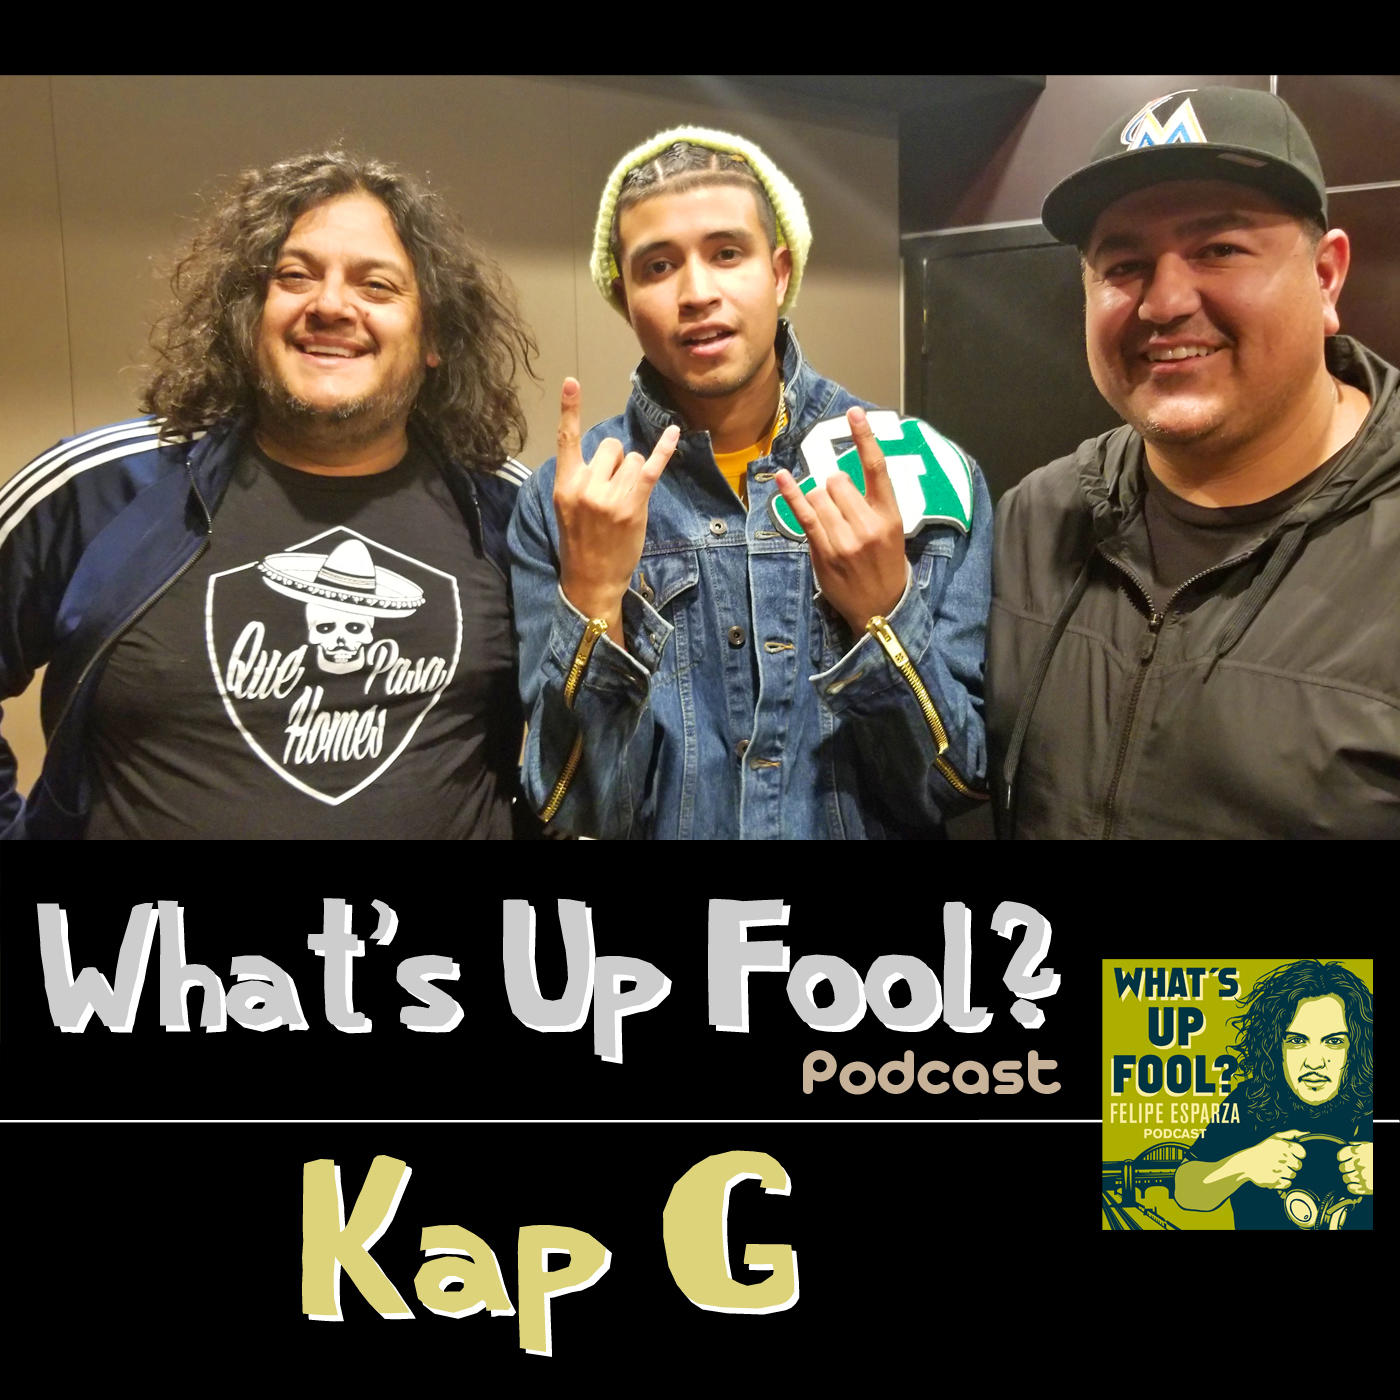 What's Up Fool? Podcast | Podbay